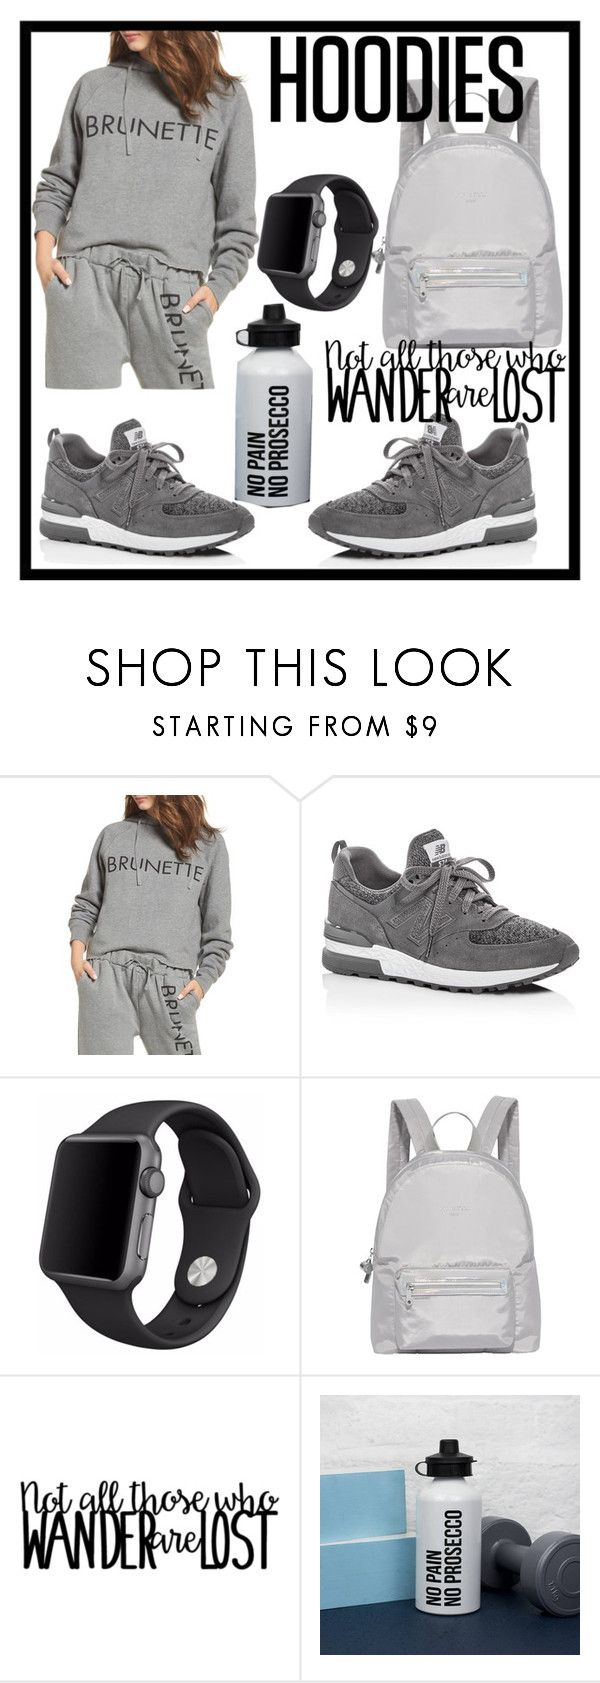 """""""HOODIES"""" by sevil609a ❤ liked on Polyvore featuring Brunette, New Balance, Apple, Fiorelli and Hoodies"""